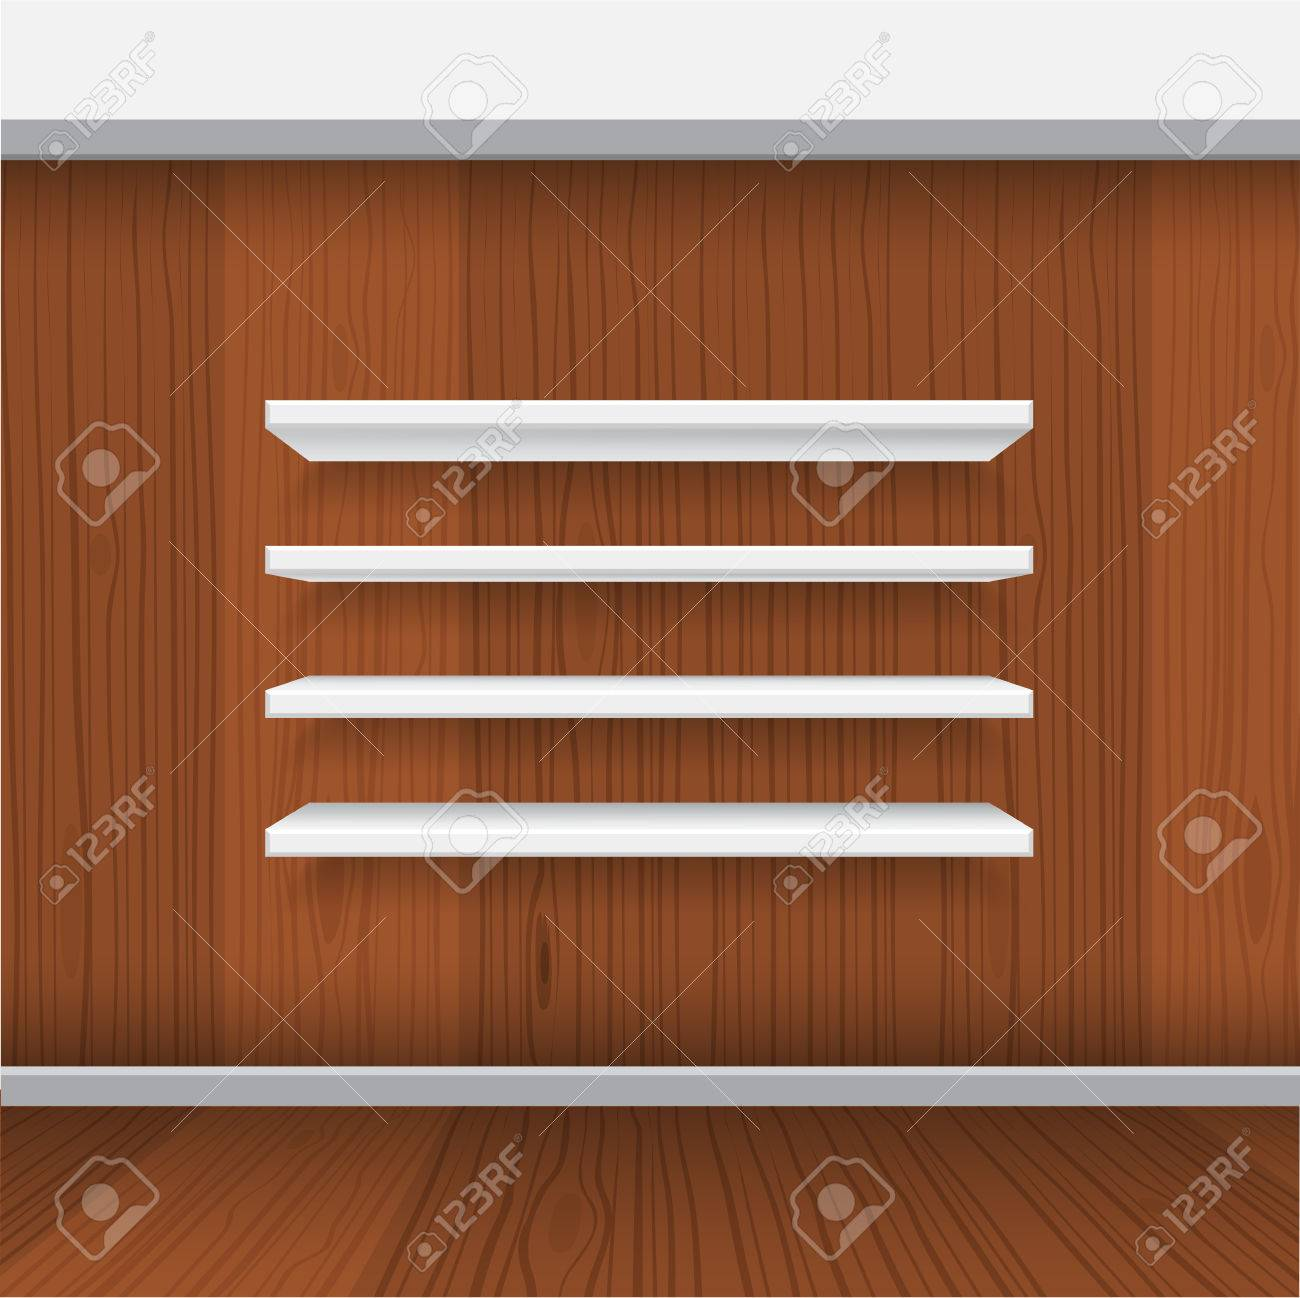 Interior wooden shelves free vector - Vector White Empty Shelf Shelves Isolated On Wall Background Display Mock Up With Realistic